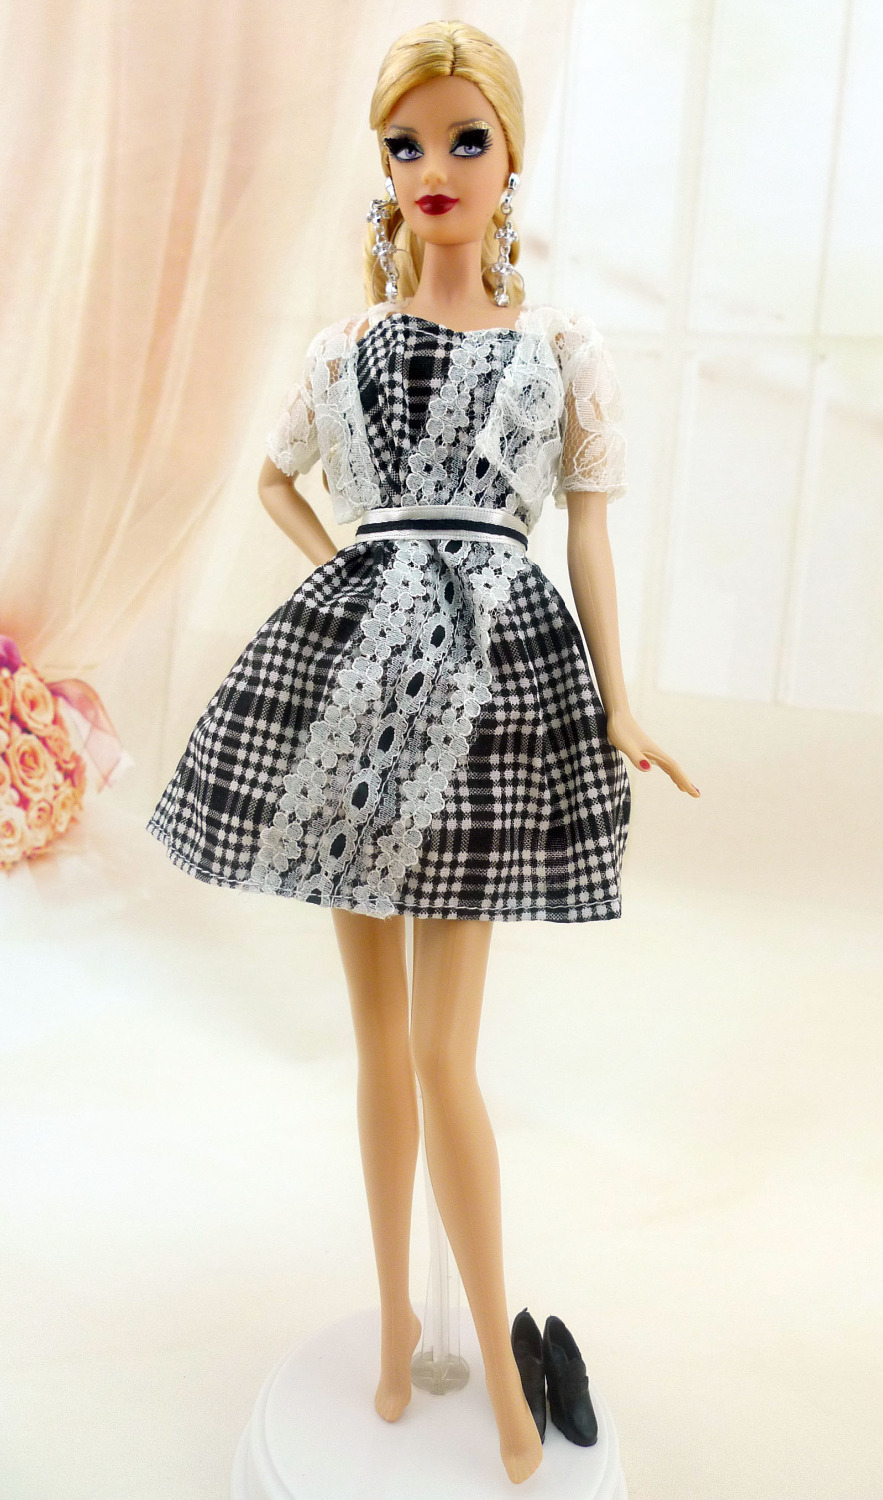 Free Shipping Princess Fashion Dress Party Gown Casual Style Skirt Shoes For Barbie Doll Best